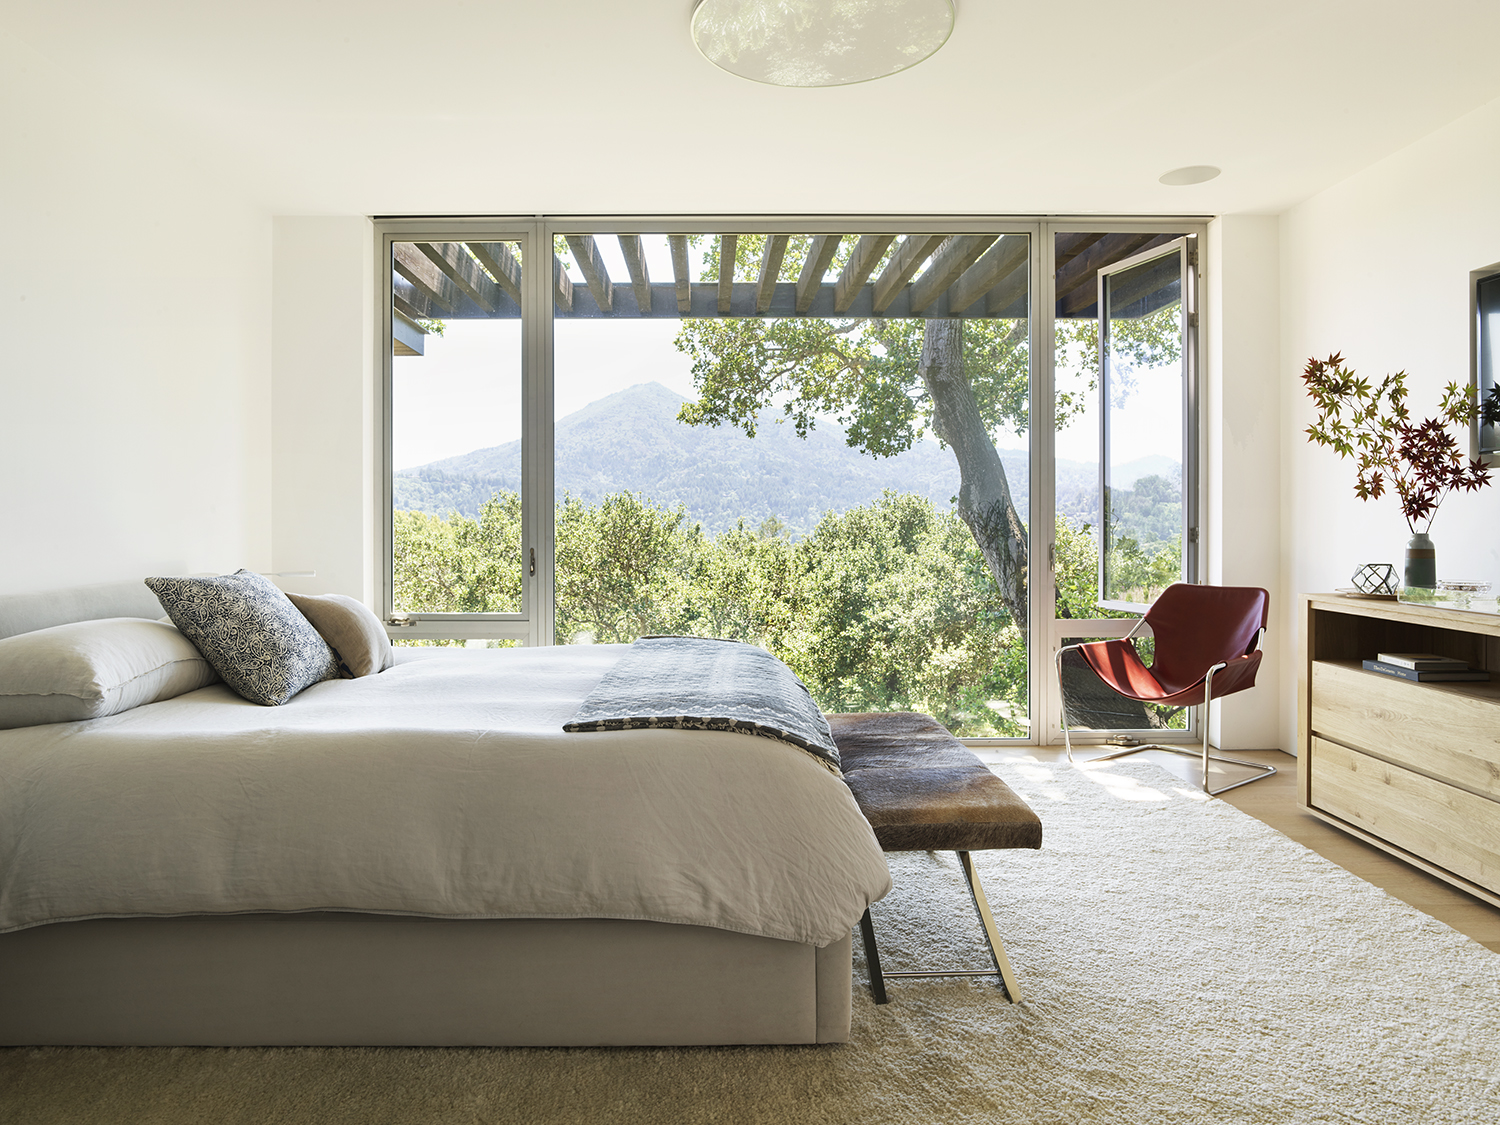 Herspring House renovated in Kentfield California, inside view of bedroom with bed, furniture and floor to ceiling windows.